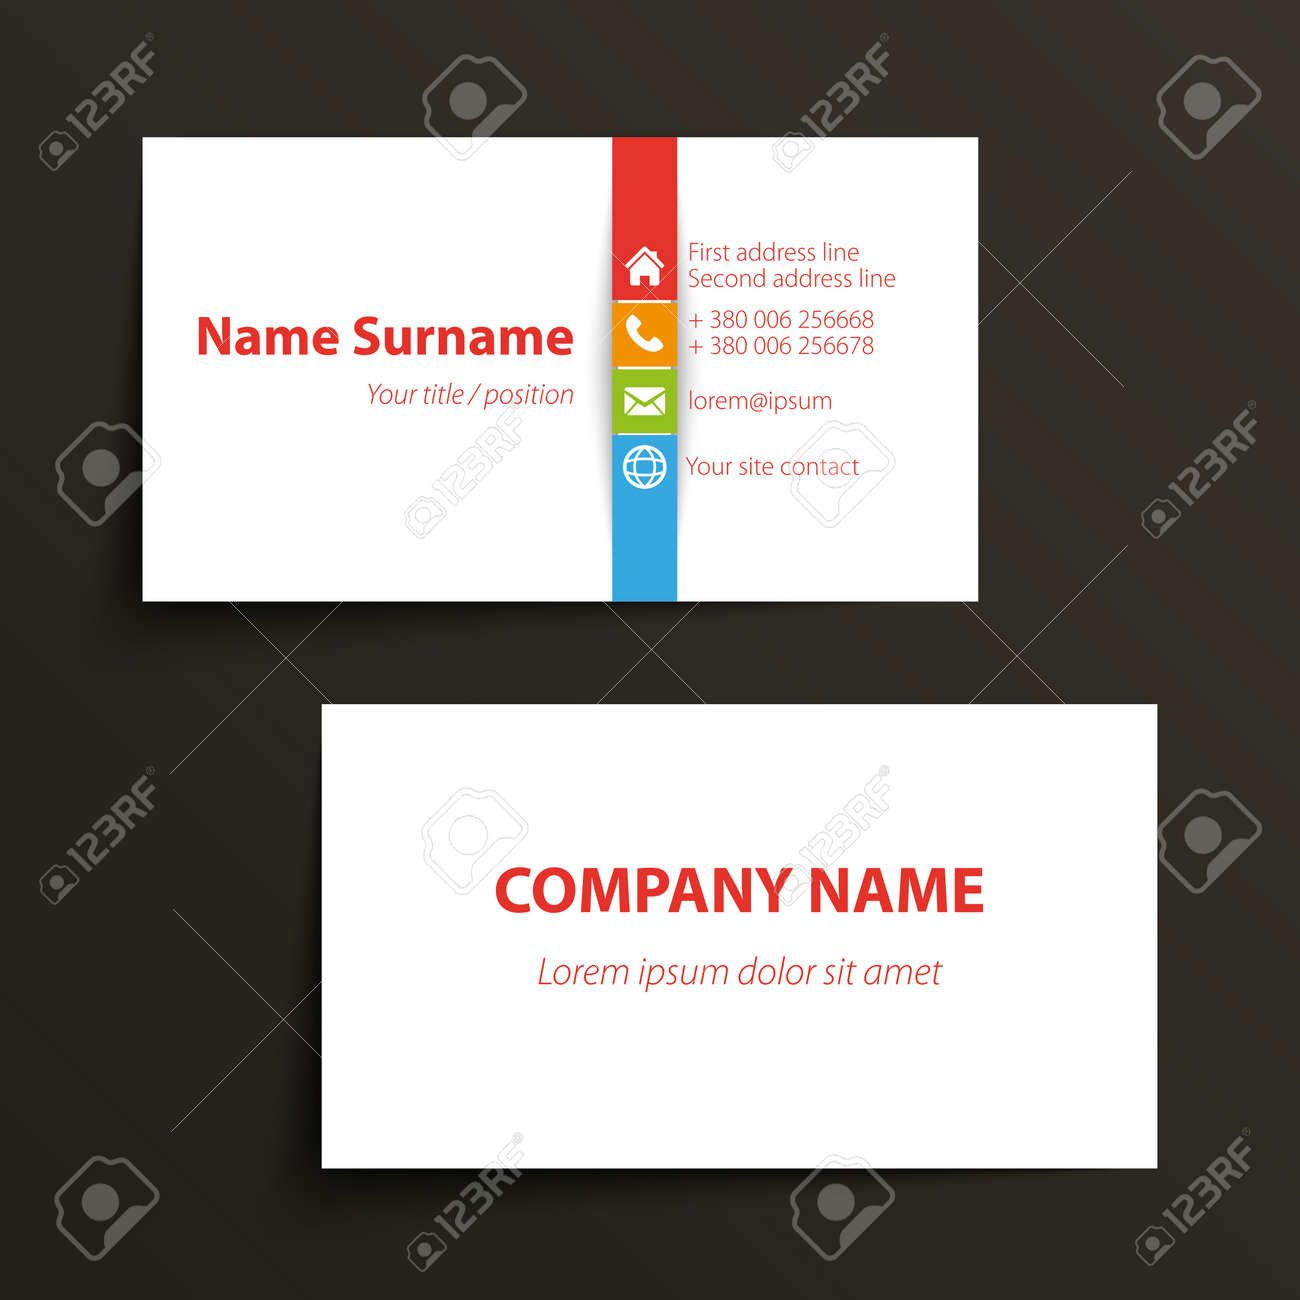 002 Fantastic Simple Visiting Card Template Picture  Templates Busines Psd Design File Free DownloadFull